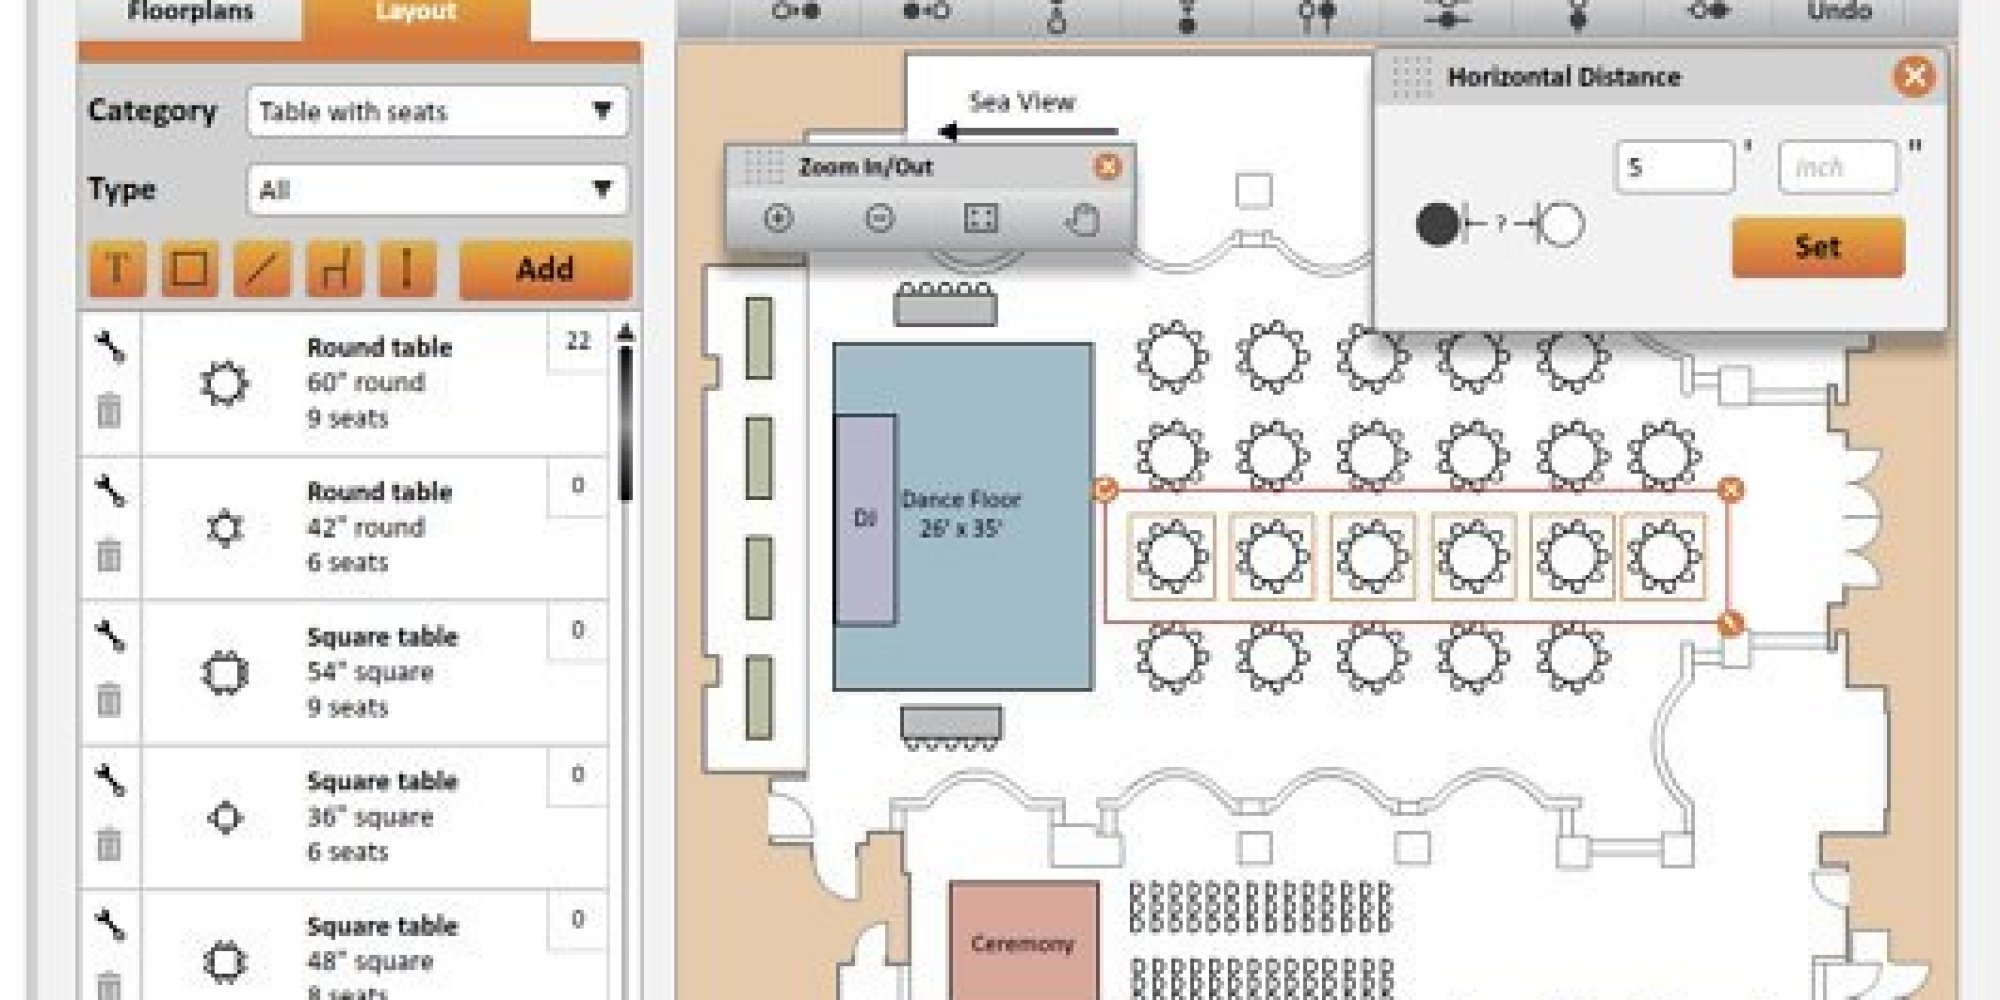 The Best Digital Seating Charts for Wedding Planning | HuffPost